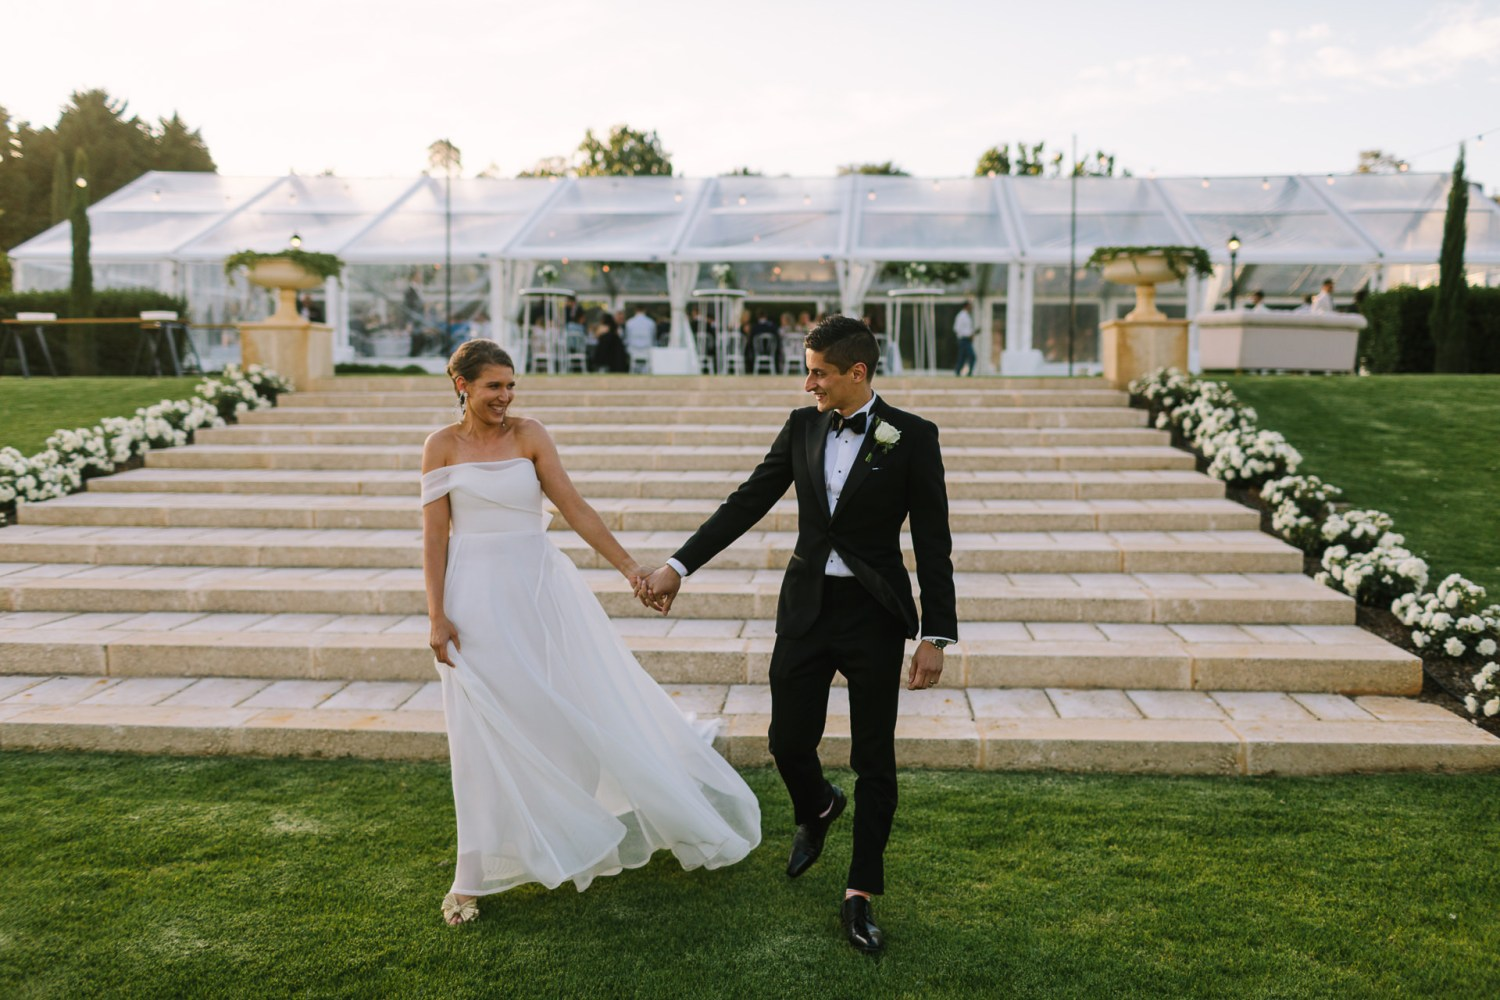 Bride wearing off the shoulder wedding dress and groom in black tuxedo walking away from their marquee reception down steps to get sunset photos at their wedding at Mandalay House and Garden in the Adelaide Hills